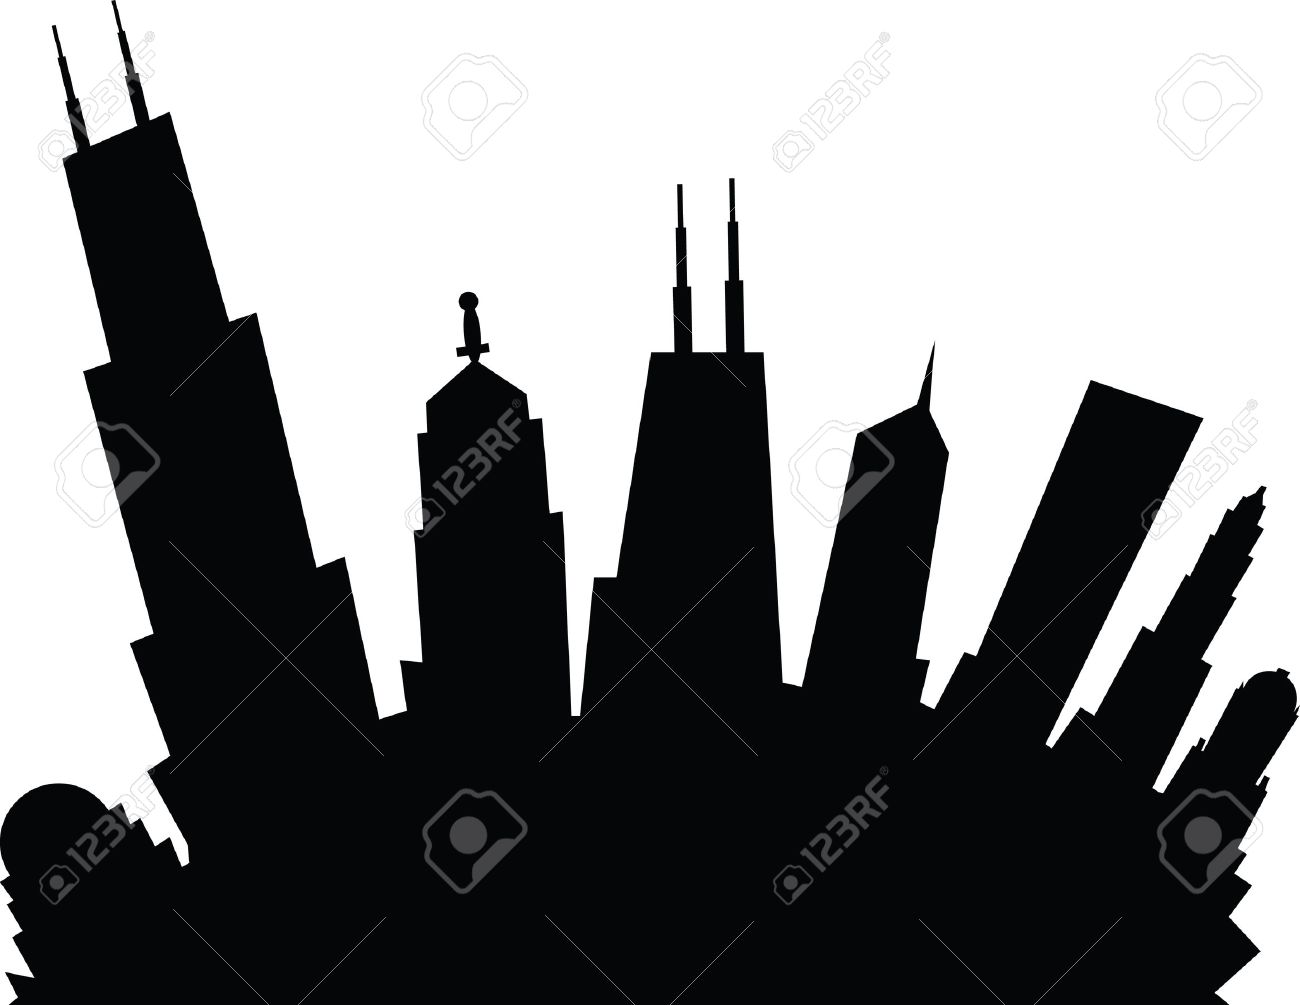 994 chicago skyline stock illustrations cliparts and royalty free rh 123rf com chicago skyline clipart free download chicago skyline clipart free download